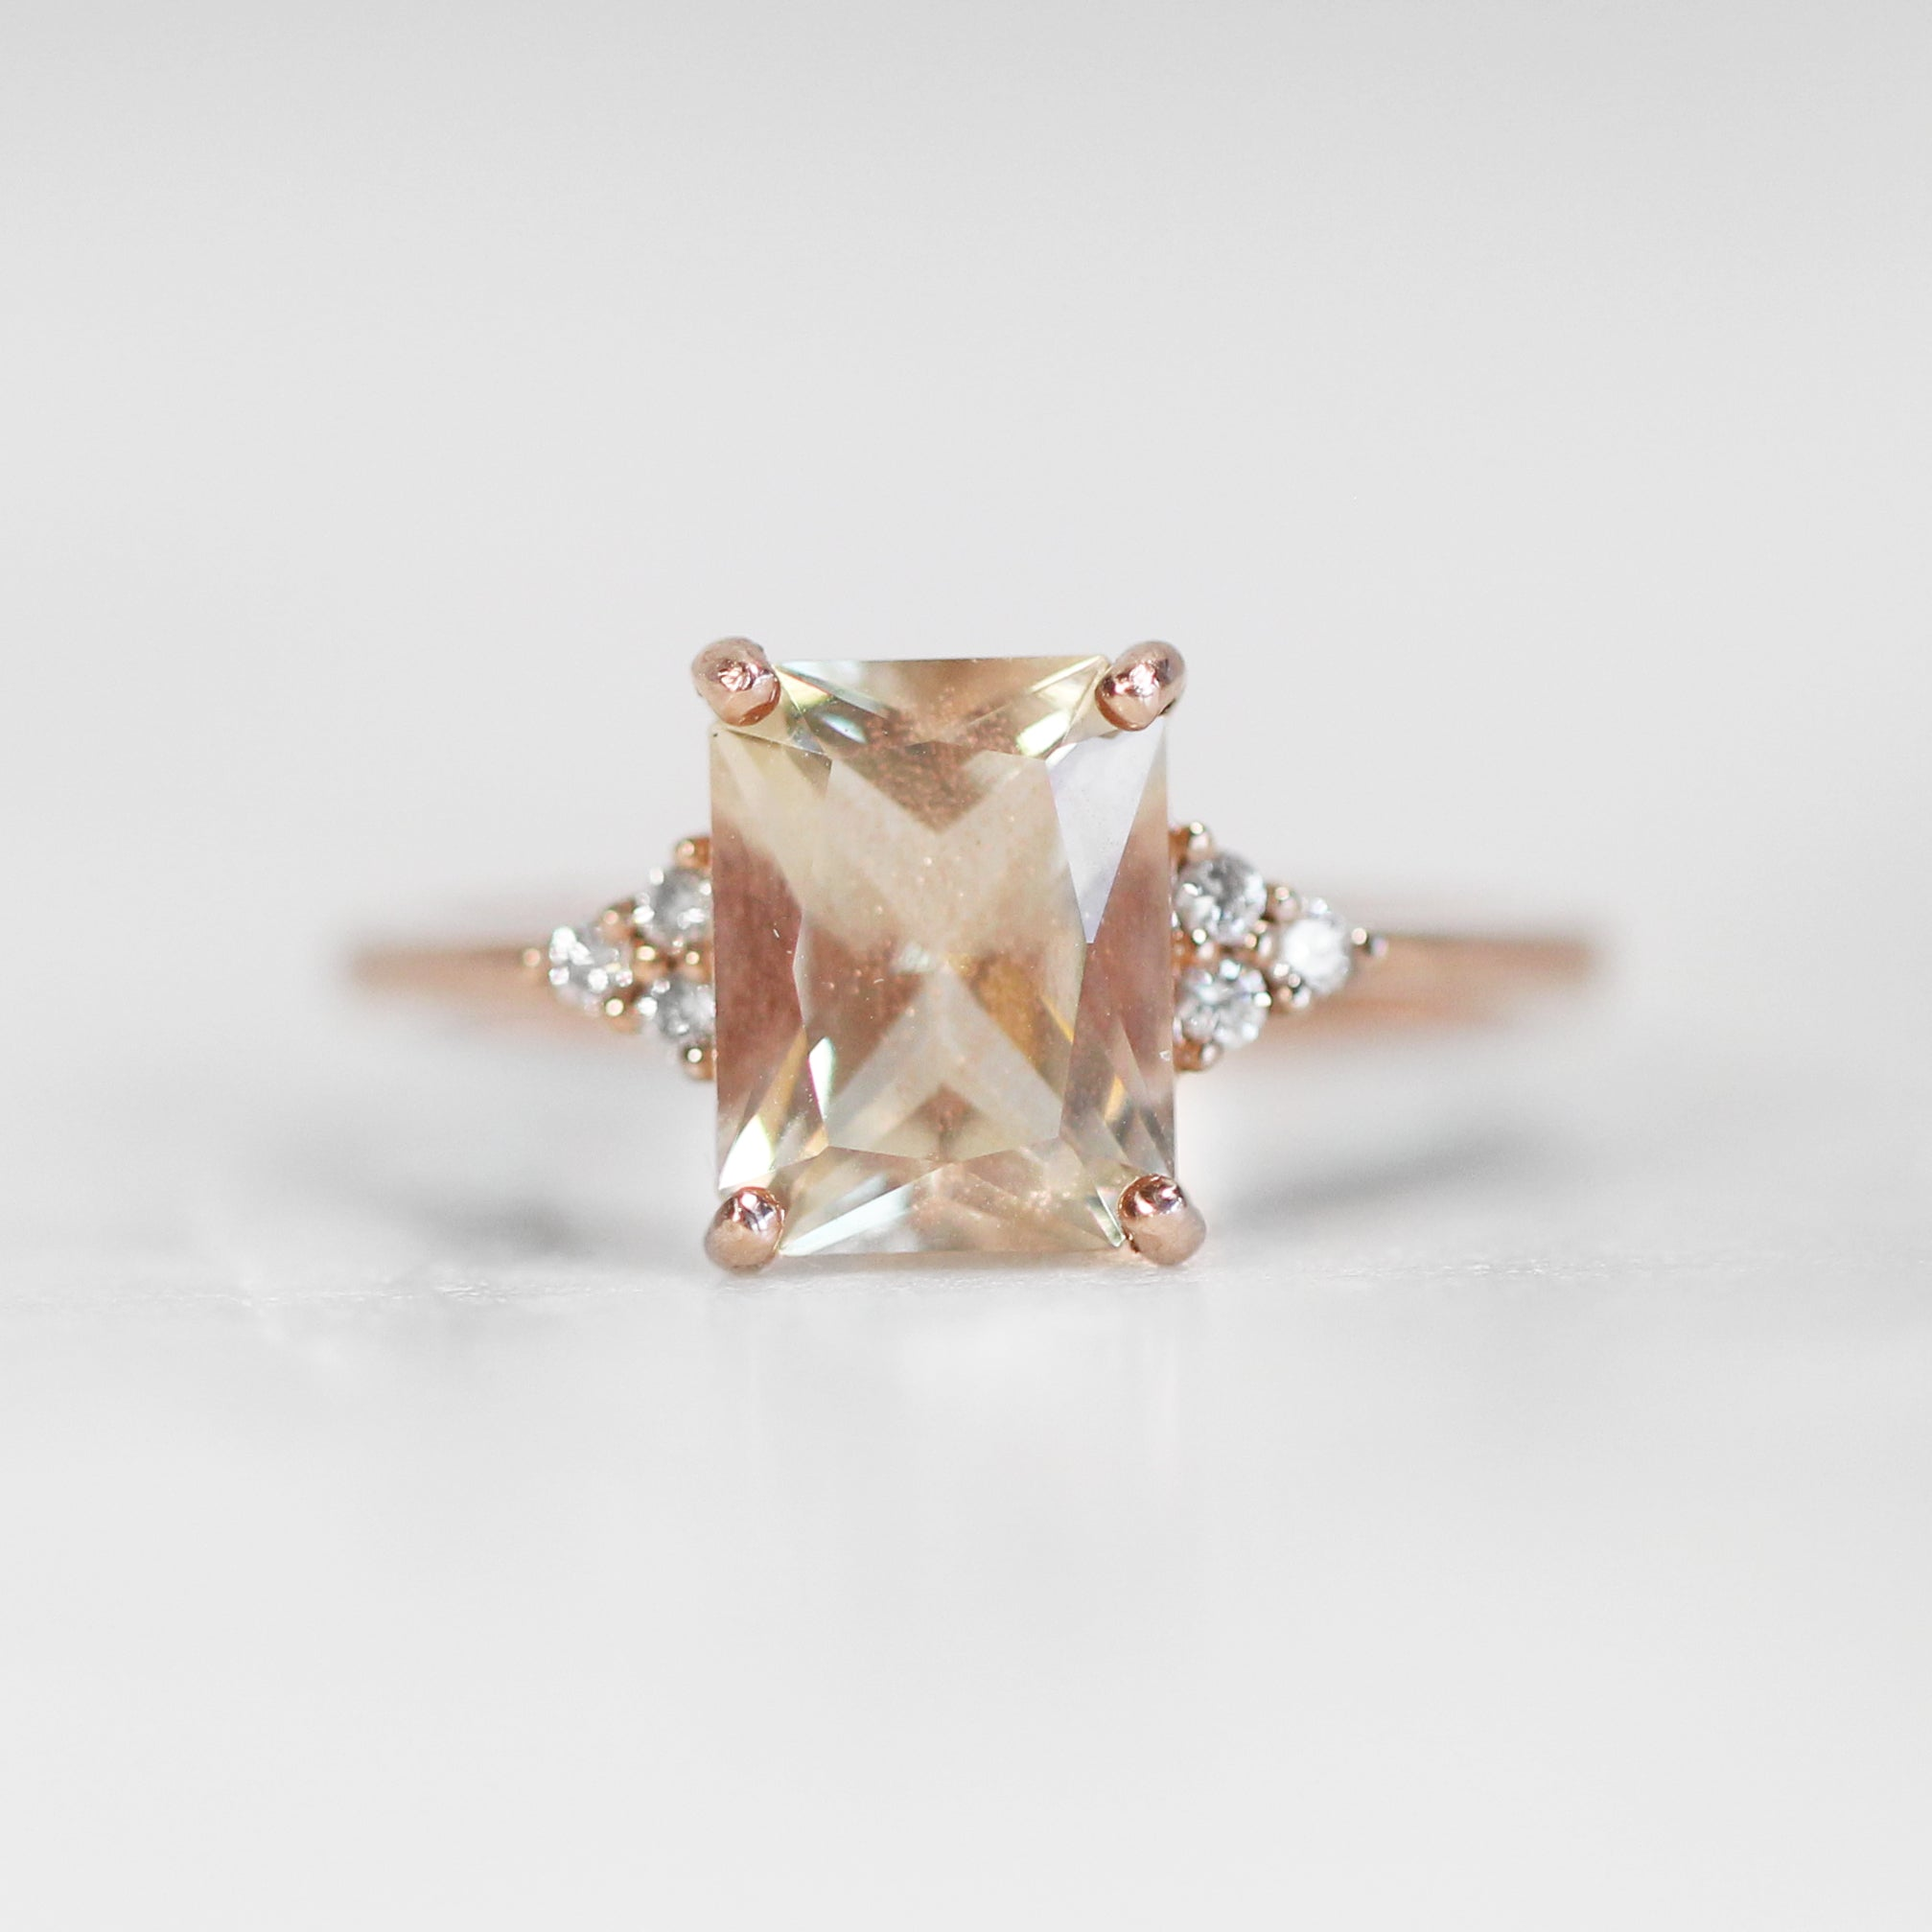 Imogene Ring with 2.12 Carat Emerald cut Sunstone in 10k Rose Gold- Ready to size and ship - Celestial Diamonds ® by Midwinter Co.